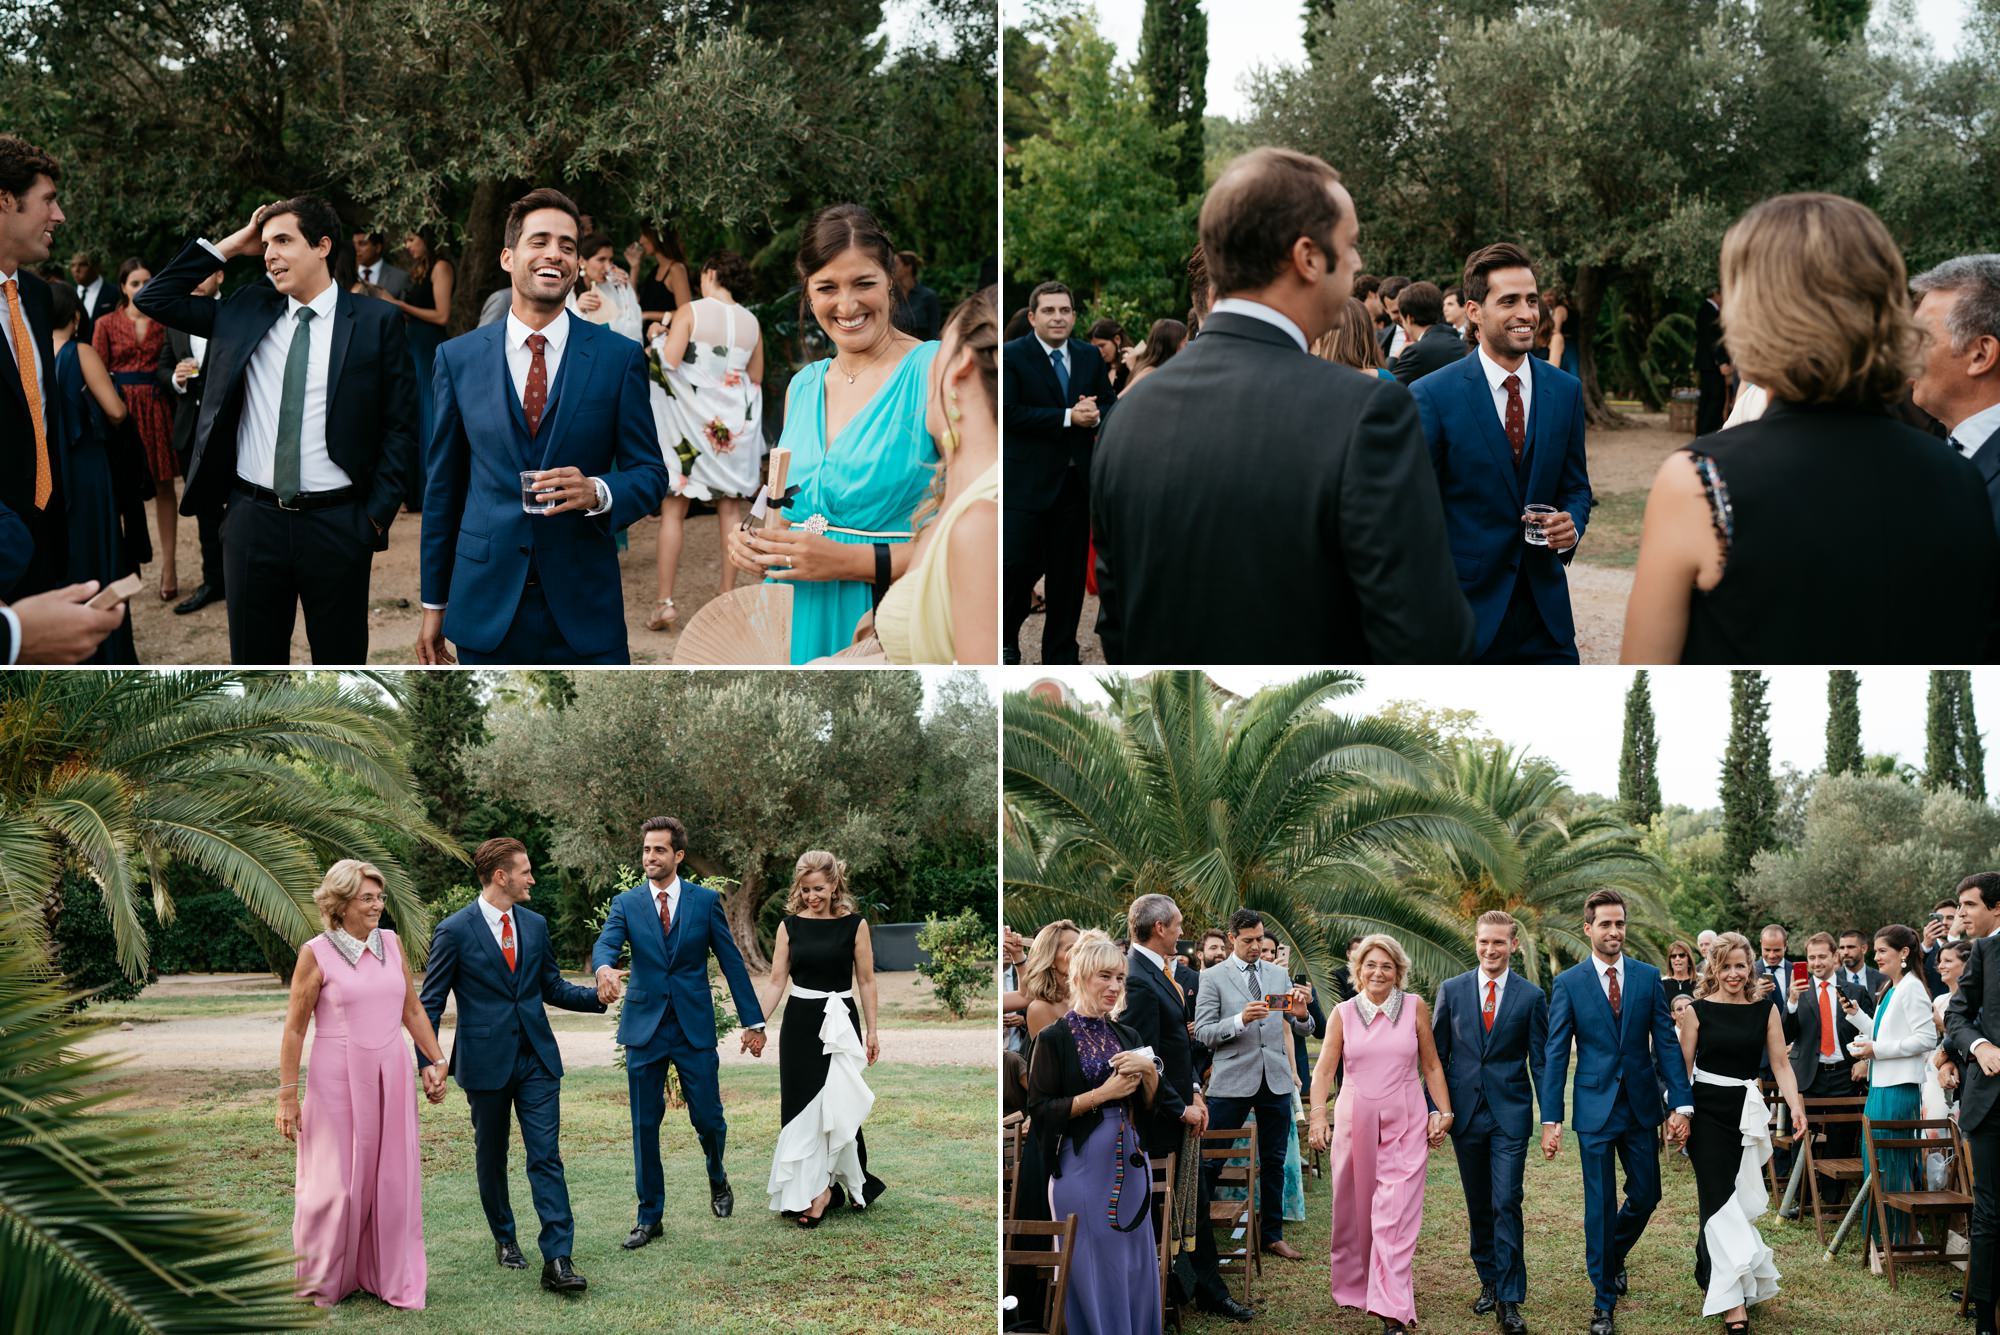 natural wedding photo barcelona alex y oscar 0174 1